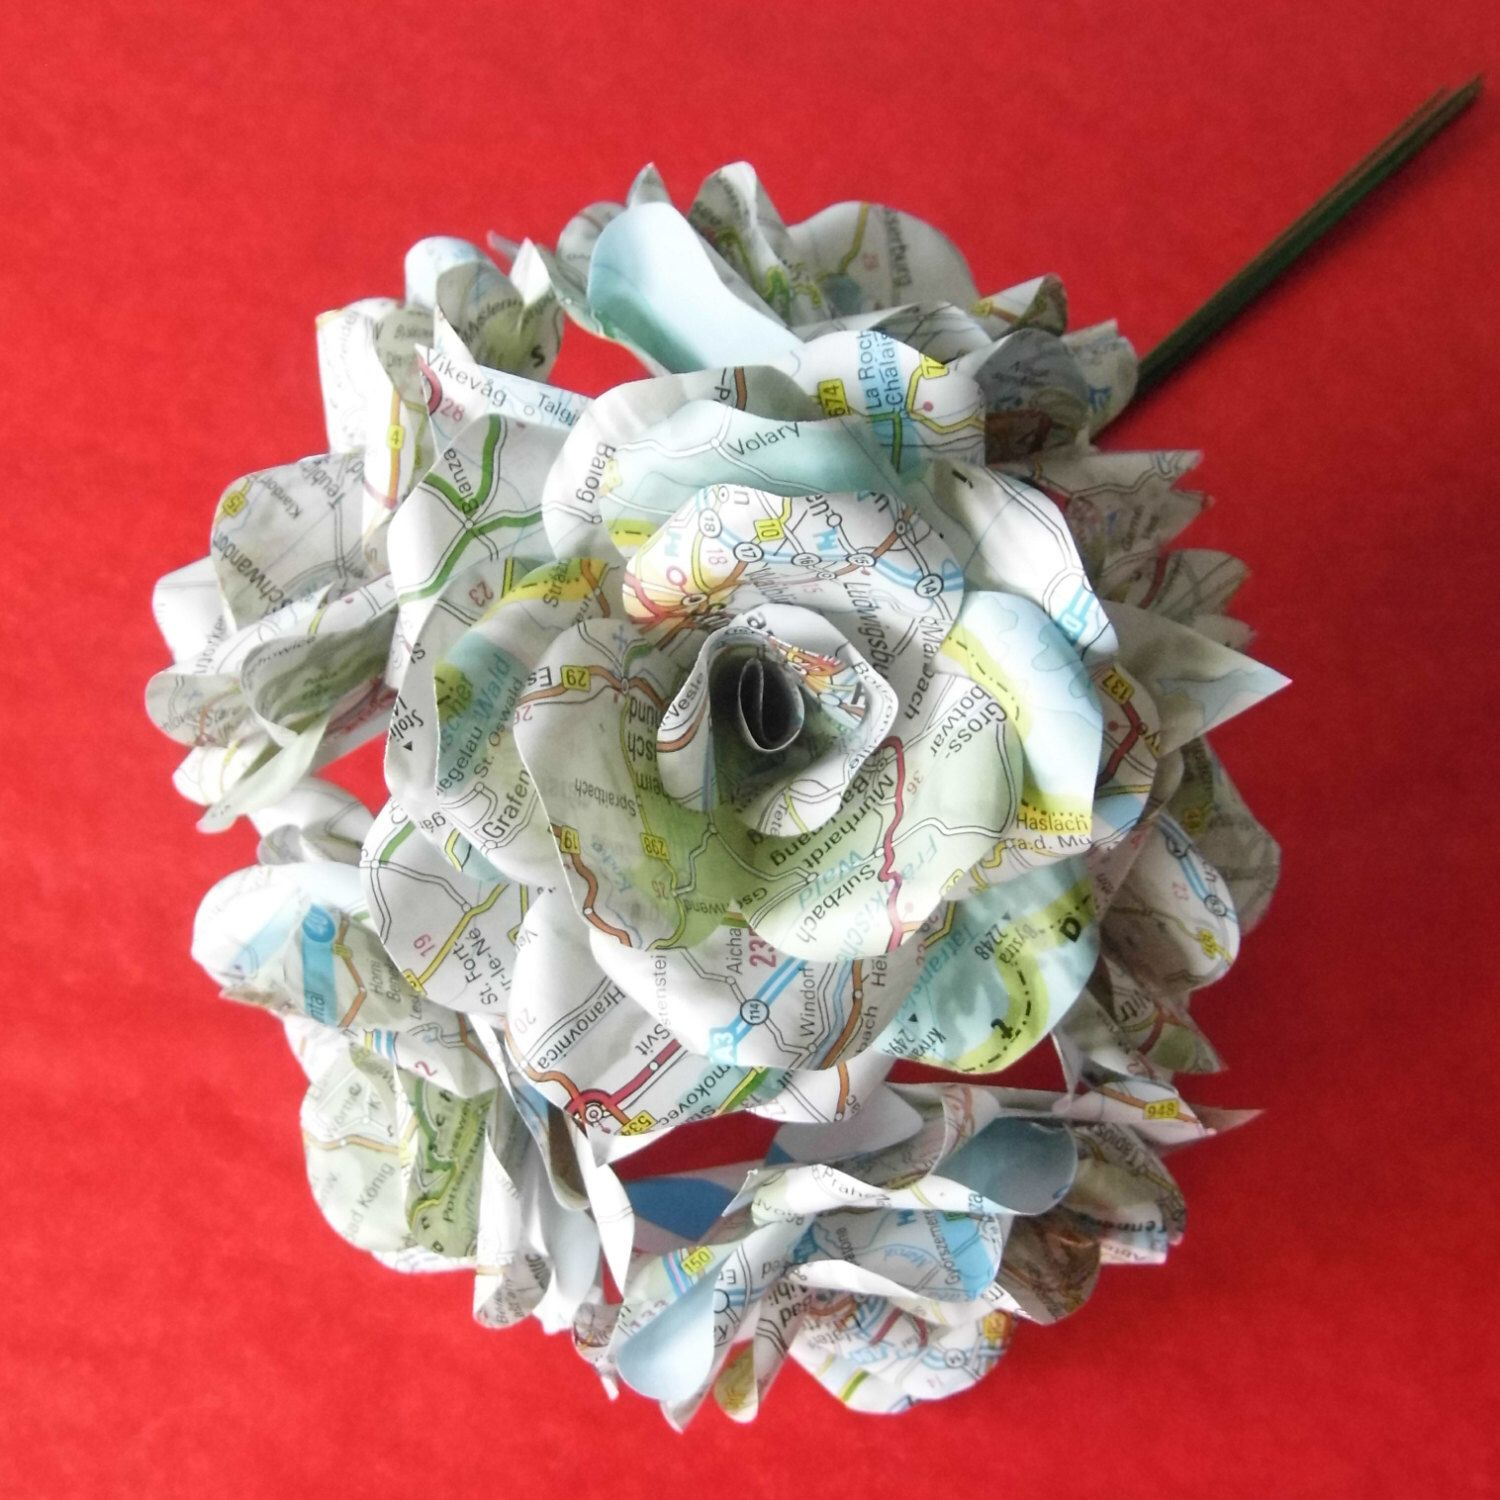 6 Stunning Map Paper Flower Roses, Bouquet, Paper Roses, Bridal Bouquet, by WearedCrafts on Etsy https://www.etsy.com/uk/listing/264841518/6-stunning-map-paper-flower-roses